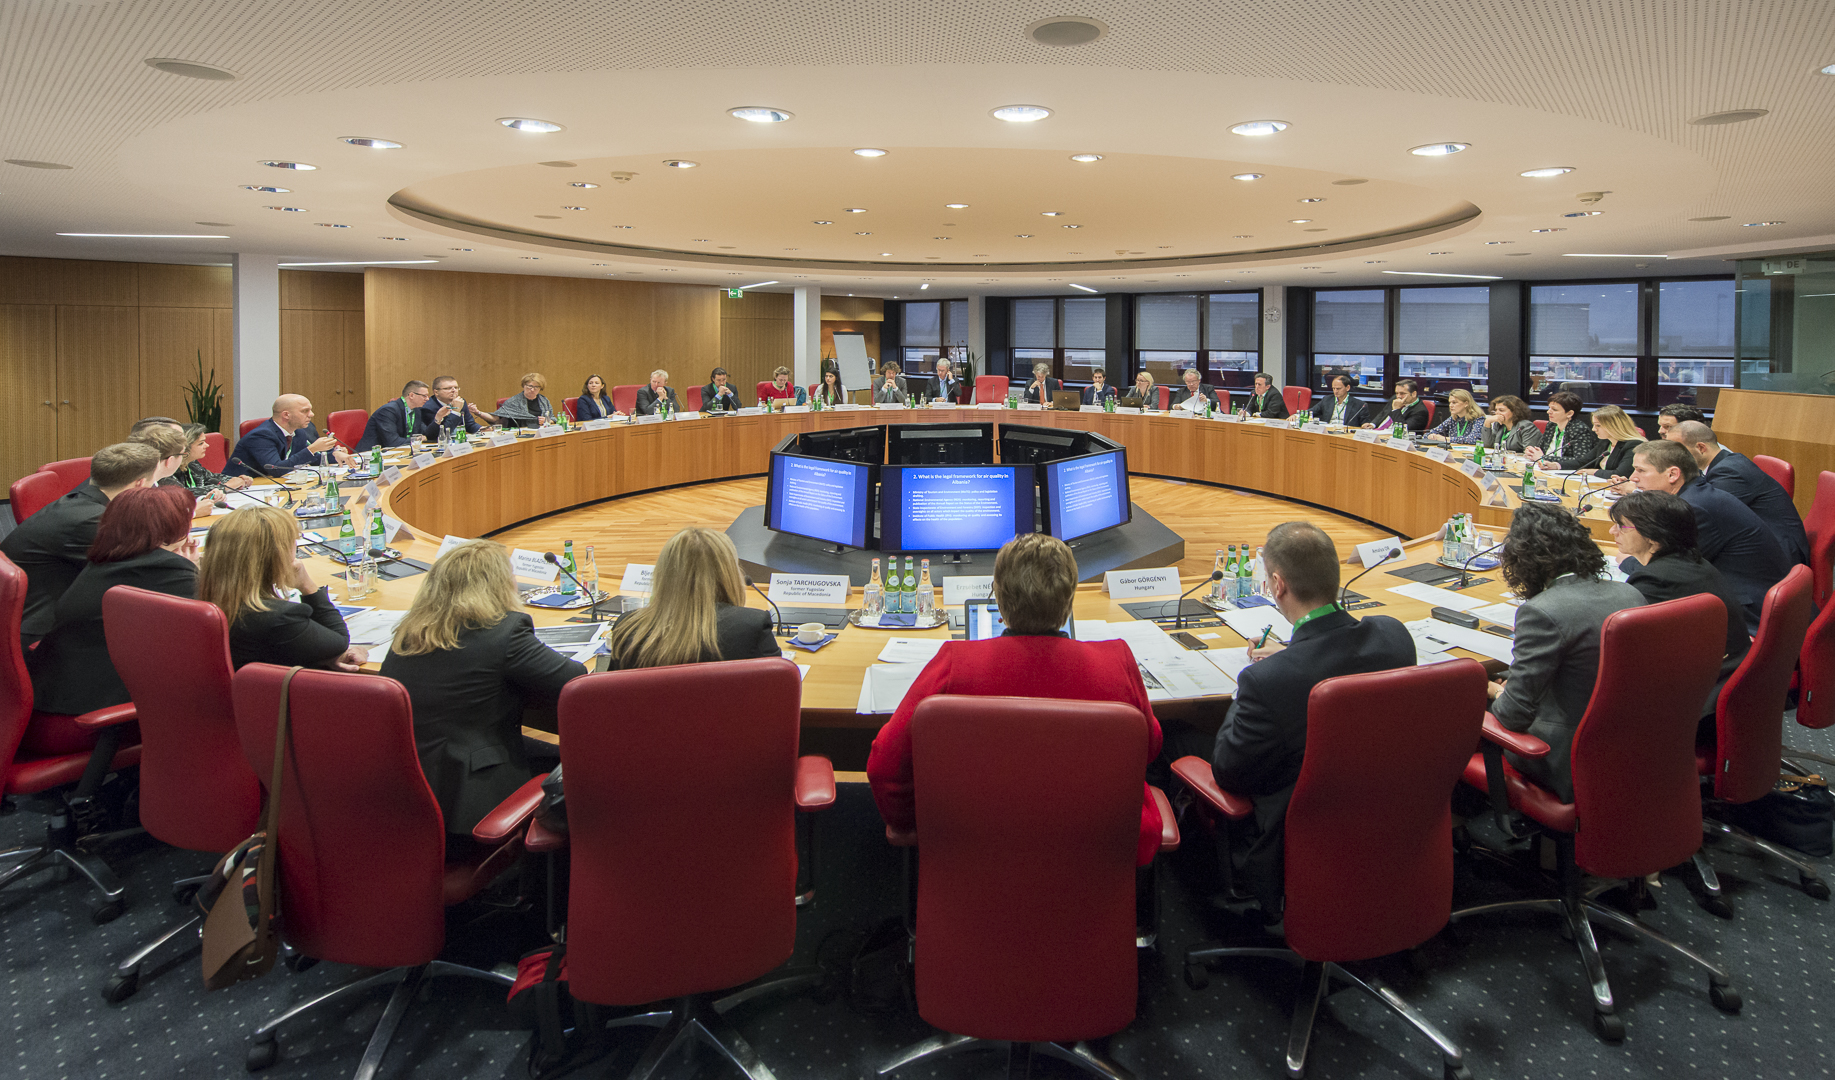 Meeting of the EUROSAI working group on air quality